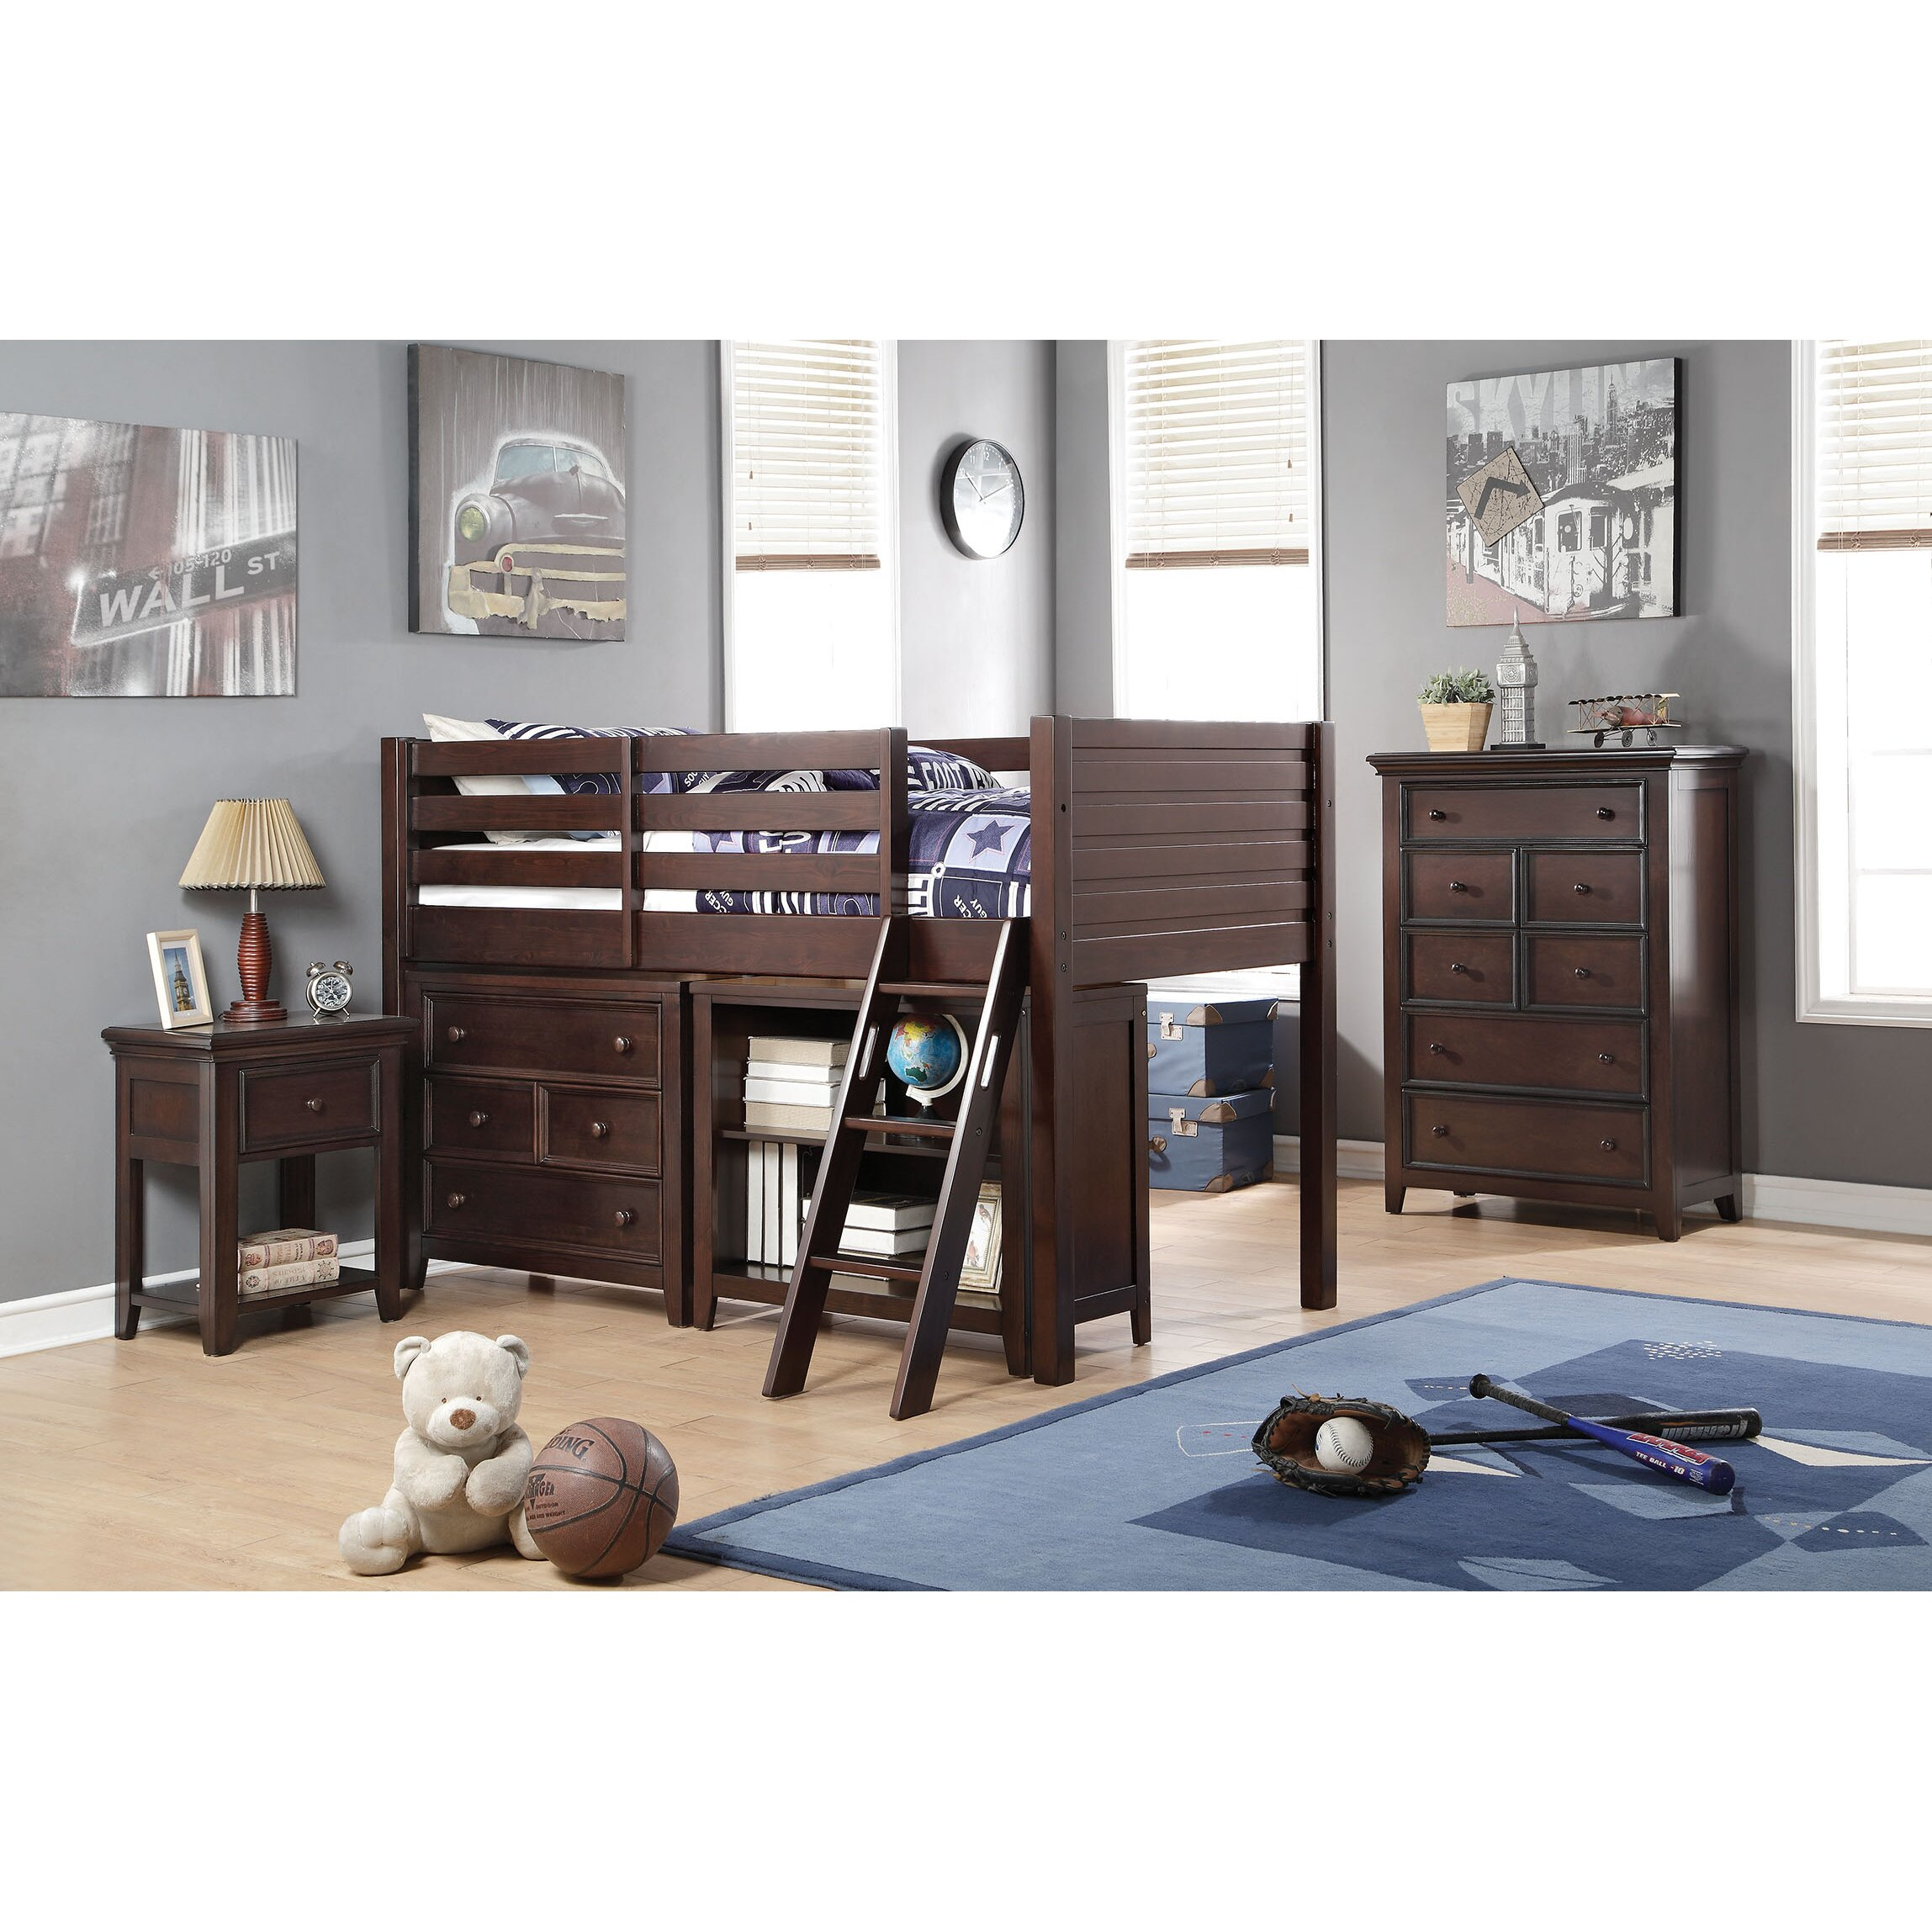 acme furniture lacey loft 2 piece bedroom set wayfair bedroom sets for girls bunk beds with slide stairs diy